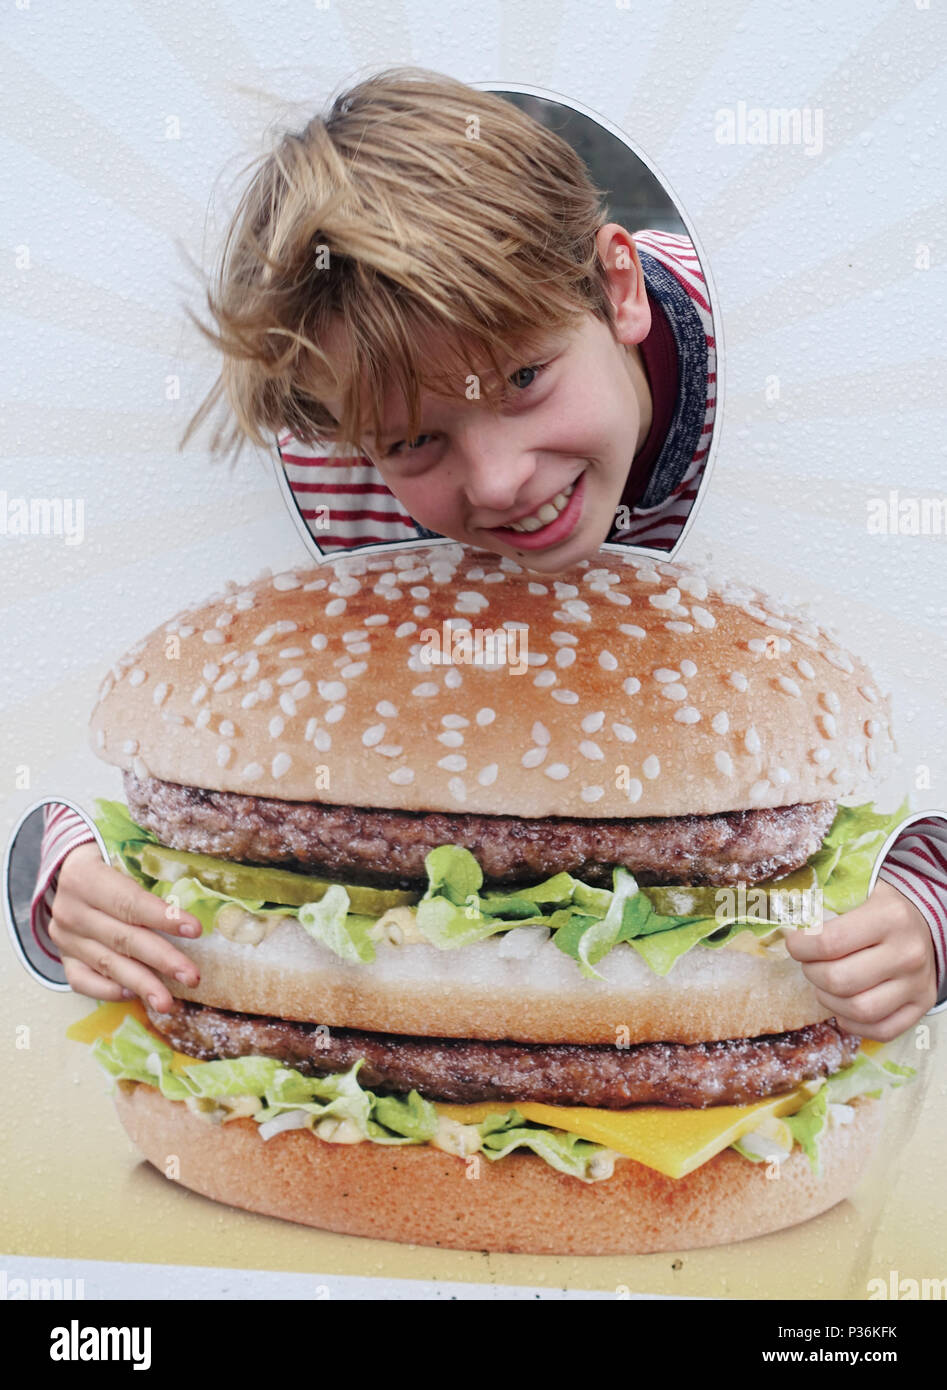 Utrecht, Netherlands, boy pokes his head through a photo wall with the image of a burger - Stock Image